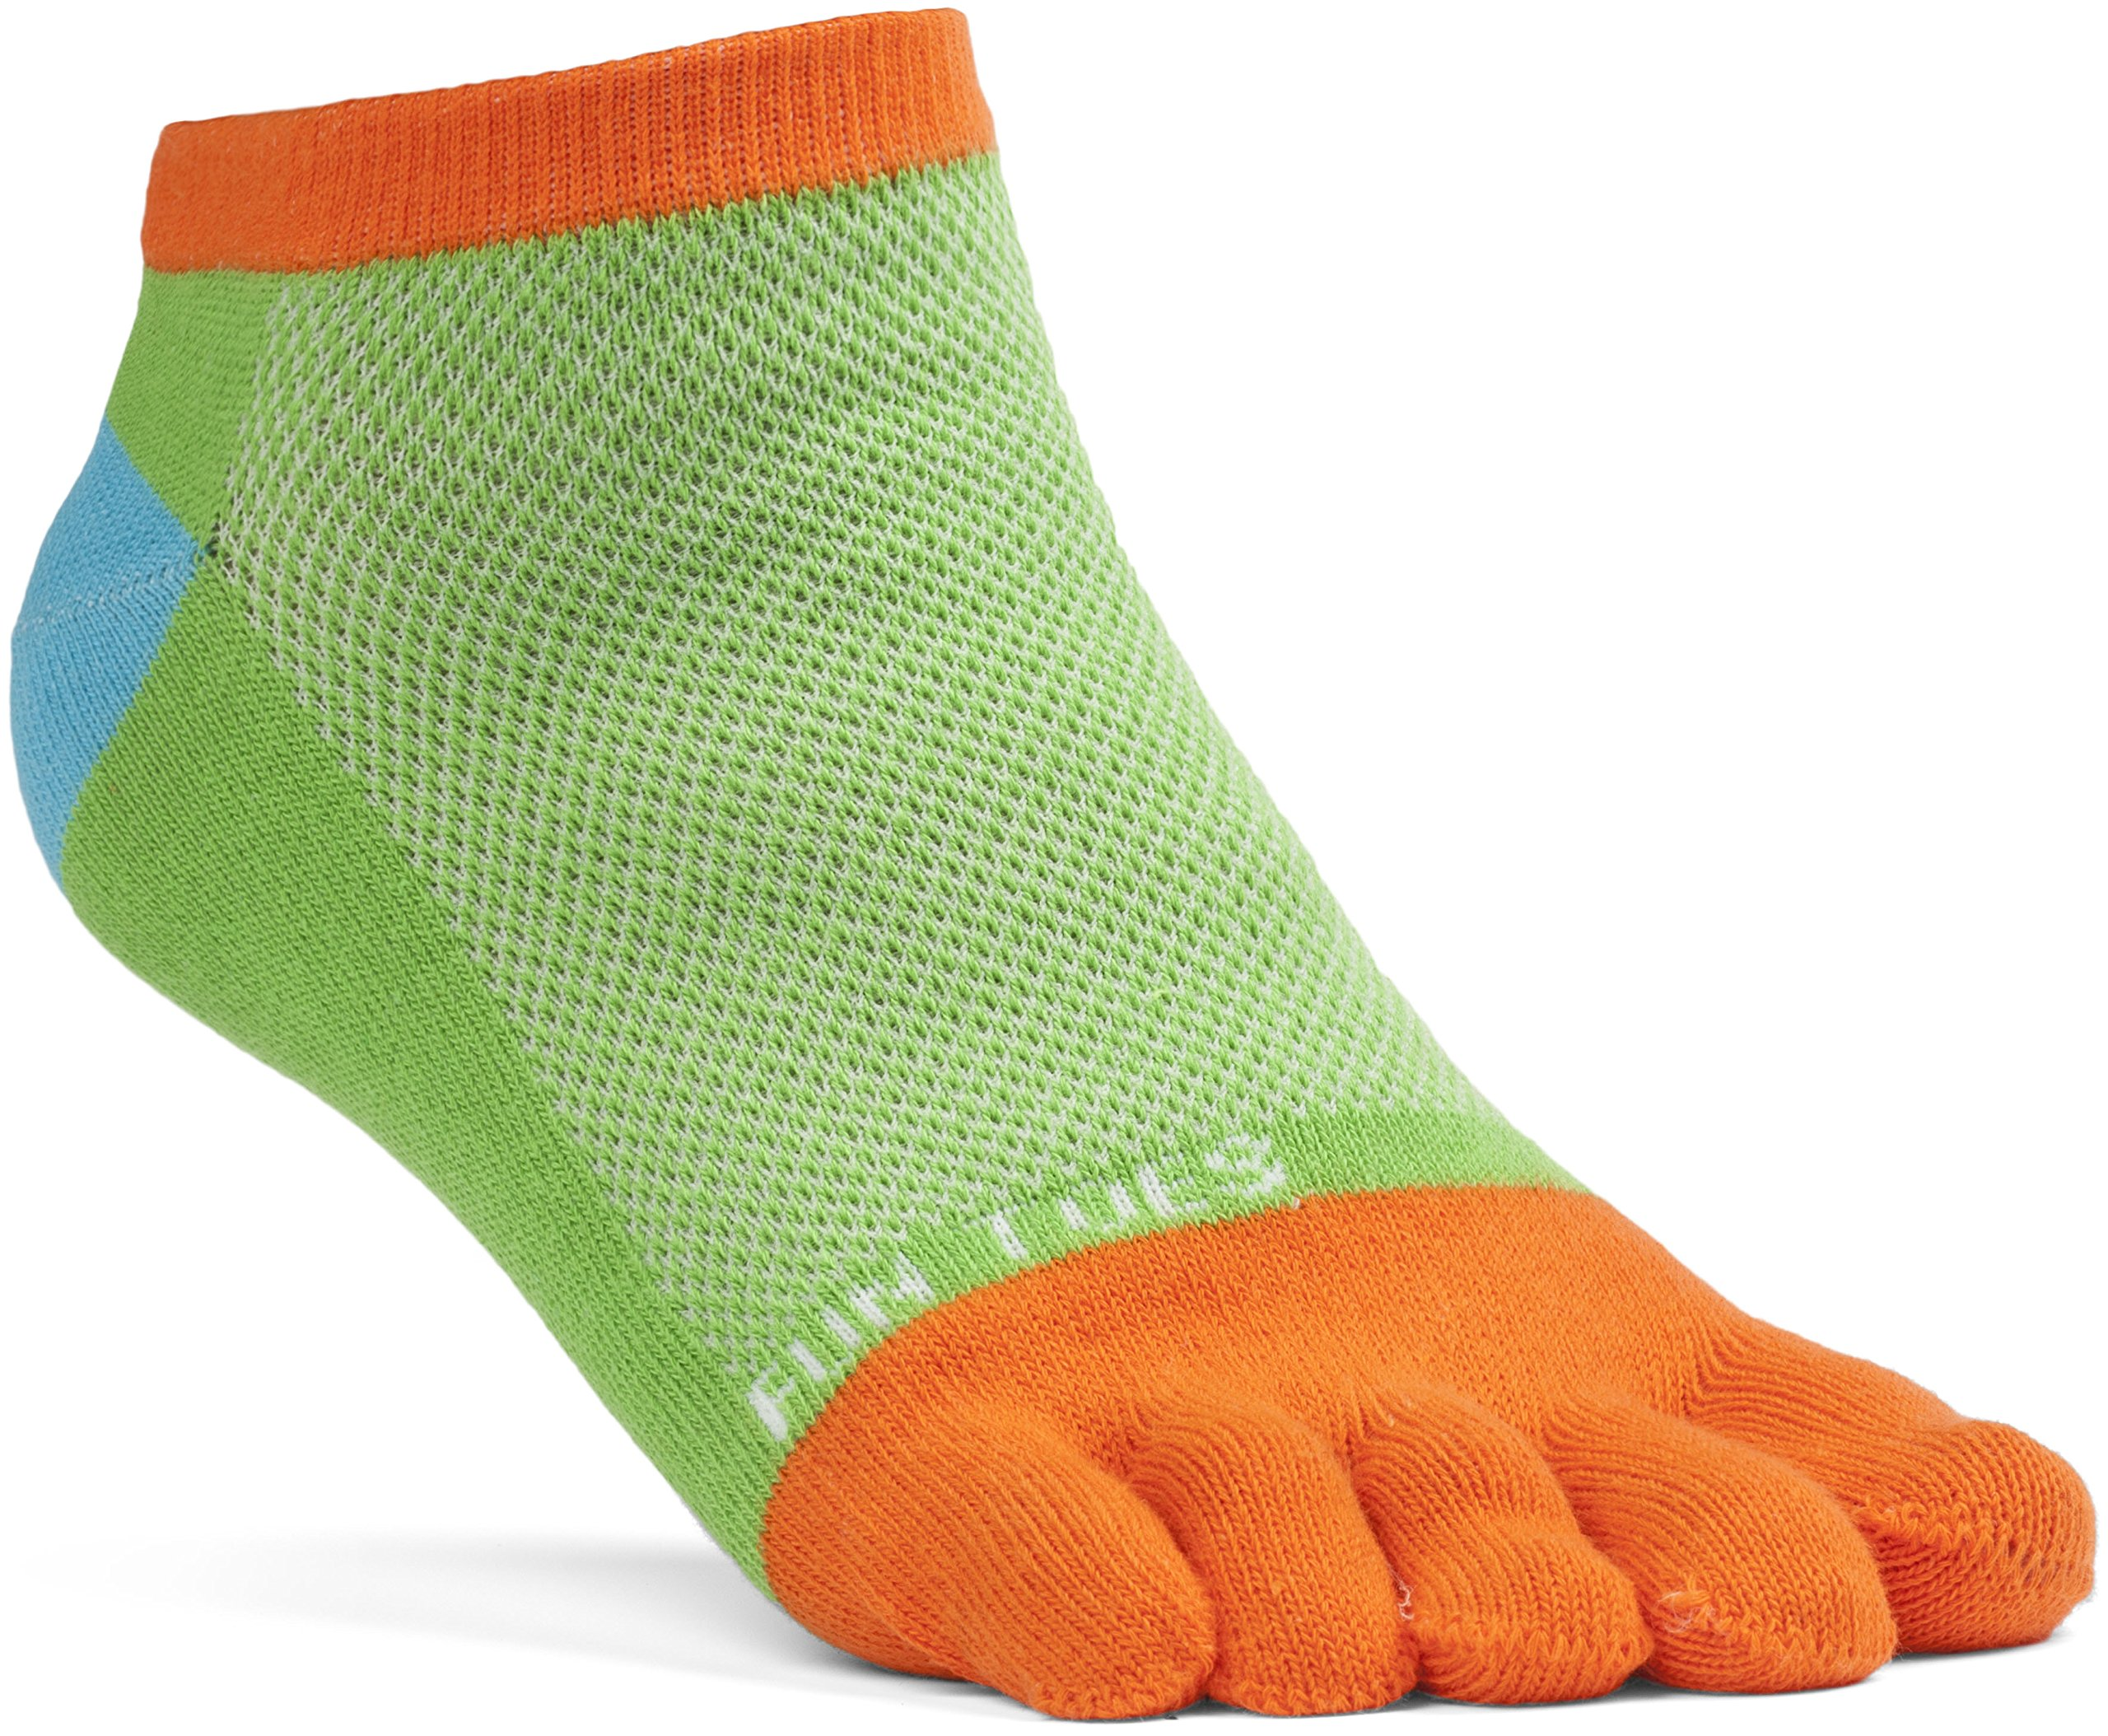 FUN TOES Women's Cotton Toe Socks Barefoot Running Socks -PACK OF 6 PAIRS- Size 9-11 -Lightweight- (Black/Coral) by FUN TOES (Image #3)